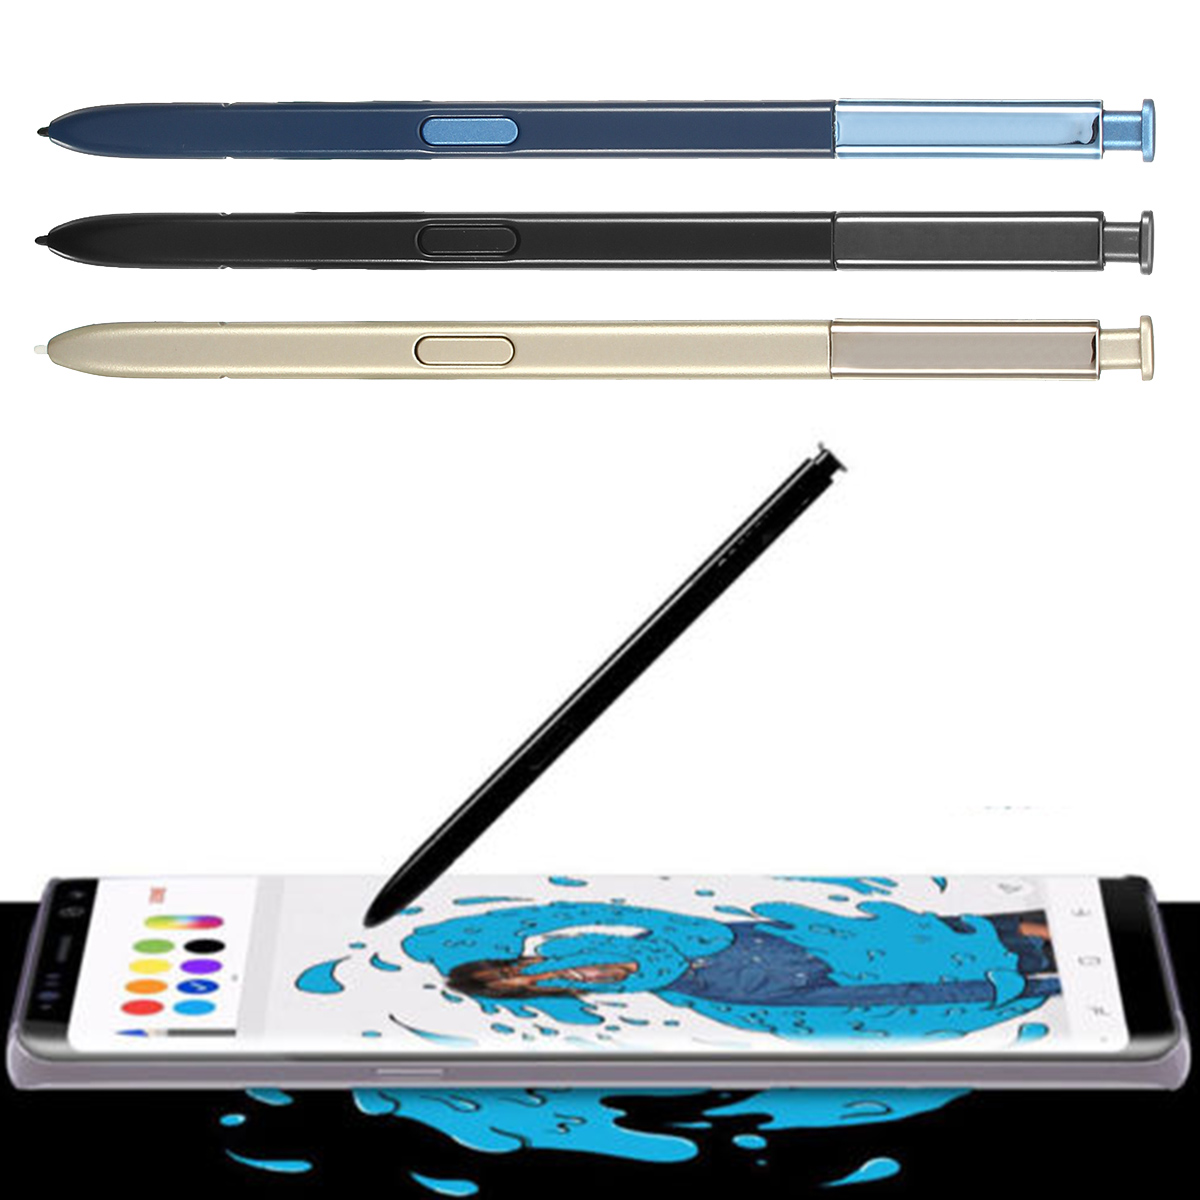 Stylus S Pen For Samsung Galaxy Note 8 AT&T Verizon T-Mobile Sprint